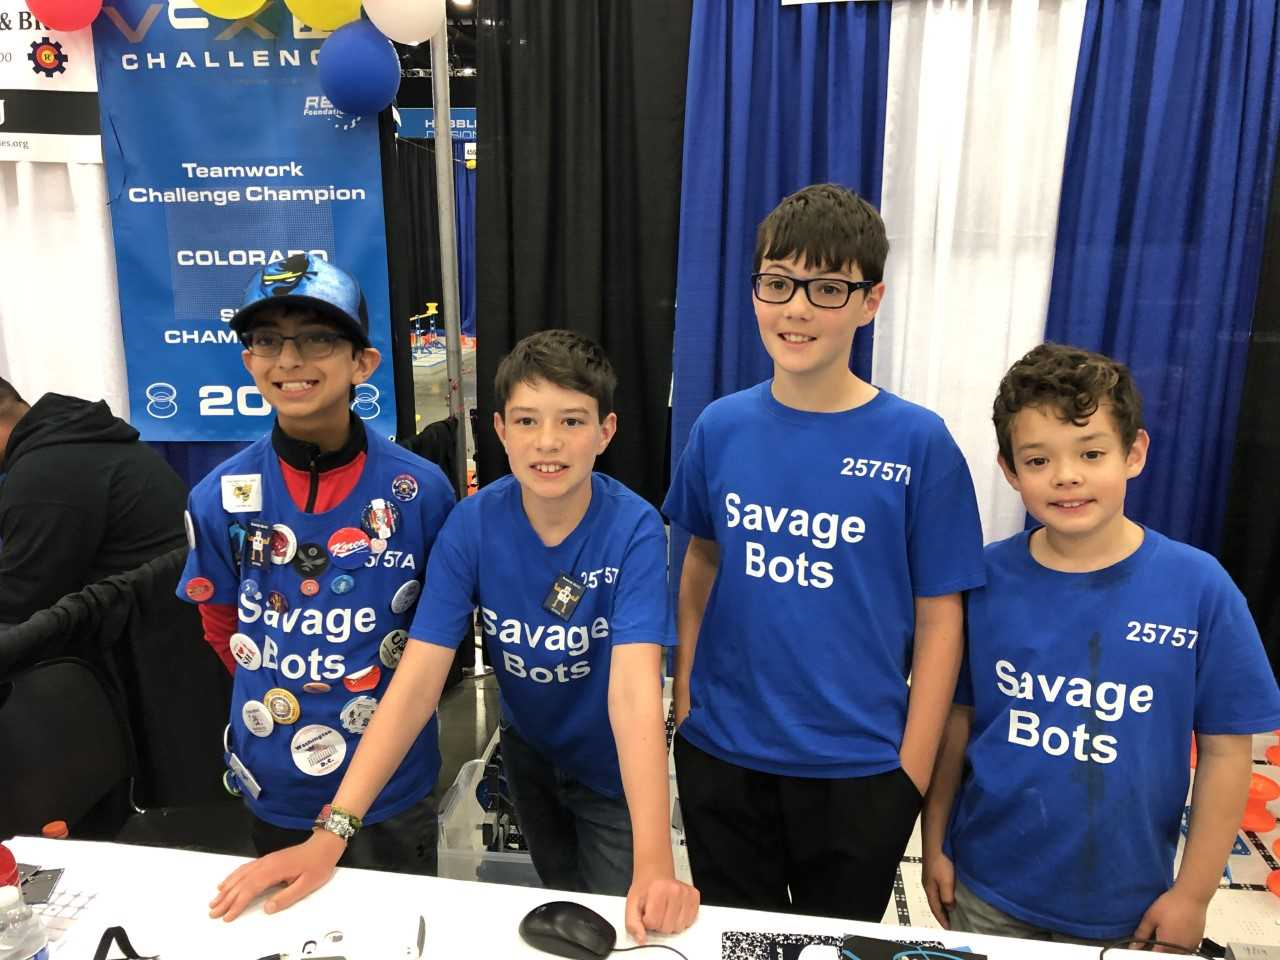 MAY 2019: NYSMITH TEAM COMPETED IN THE 2019 elementary School Level Vex IQ World Championship in Louisville, Kentucky